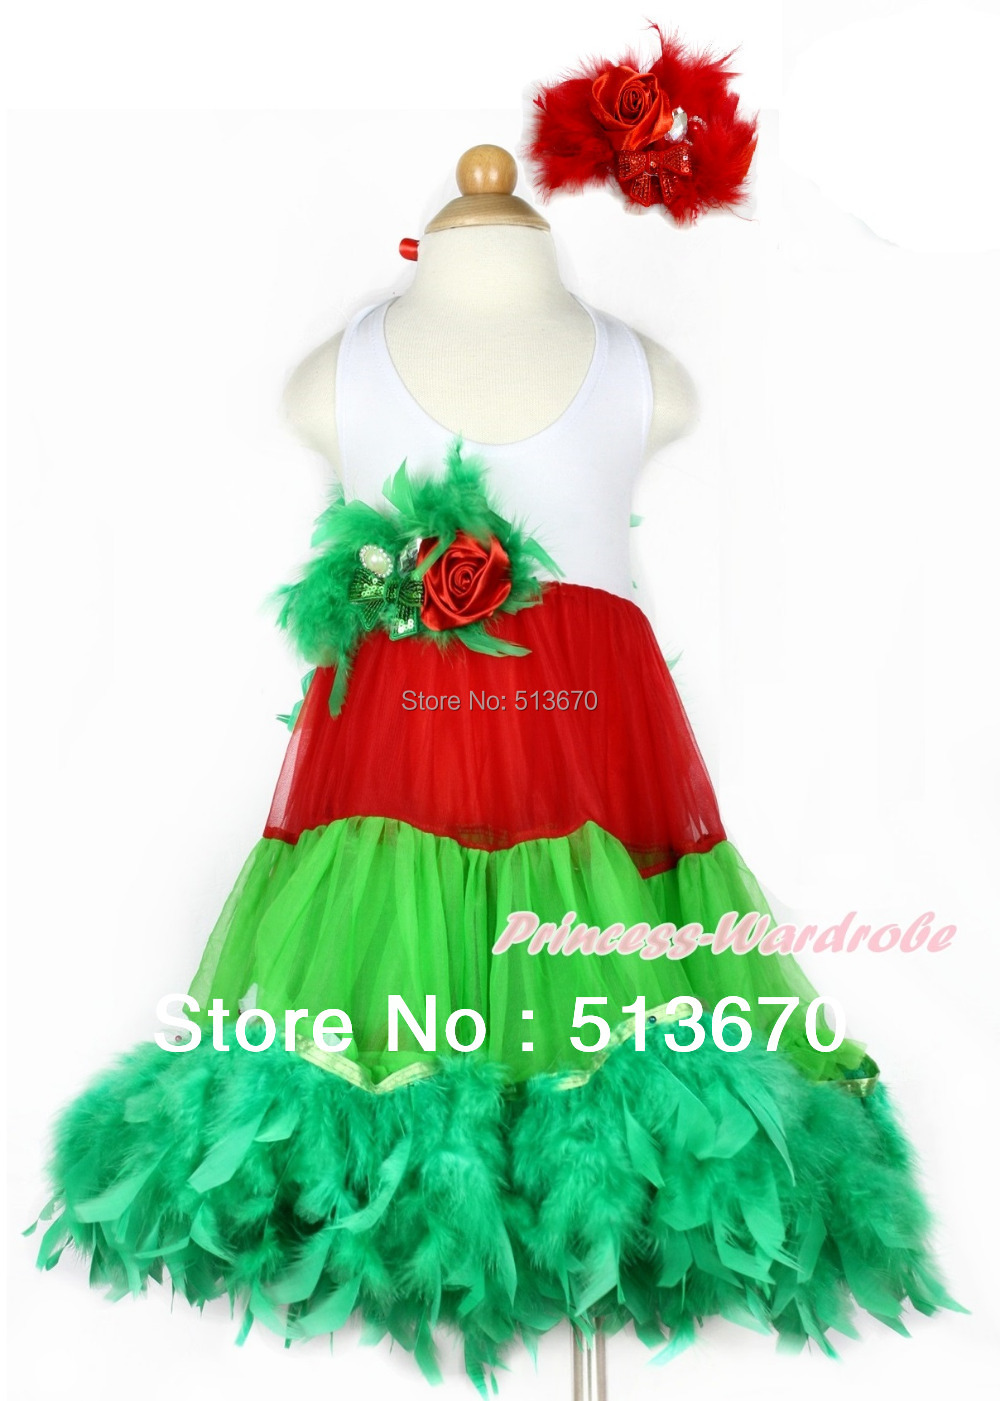 Xmas White Red Green ONE-PIECE Petti Dress Kelly Green Posh Feather Red Feather Rose Bow With Accessory 2PC Set MALP29 -1 2015 new arrive super league christmas outfit pajamas for boys kids children suit st 004